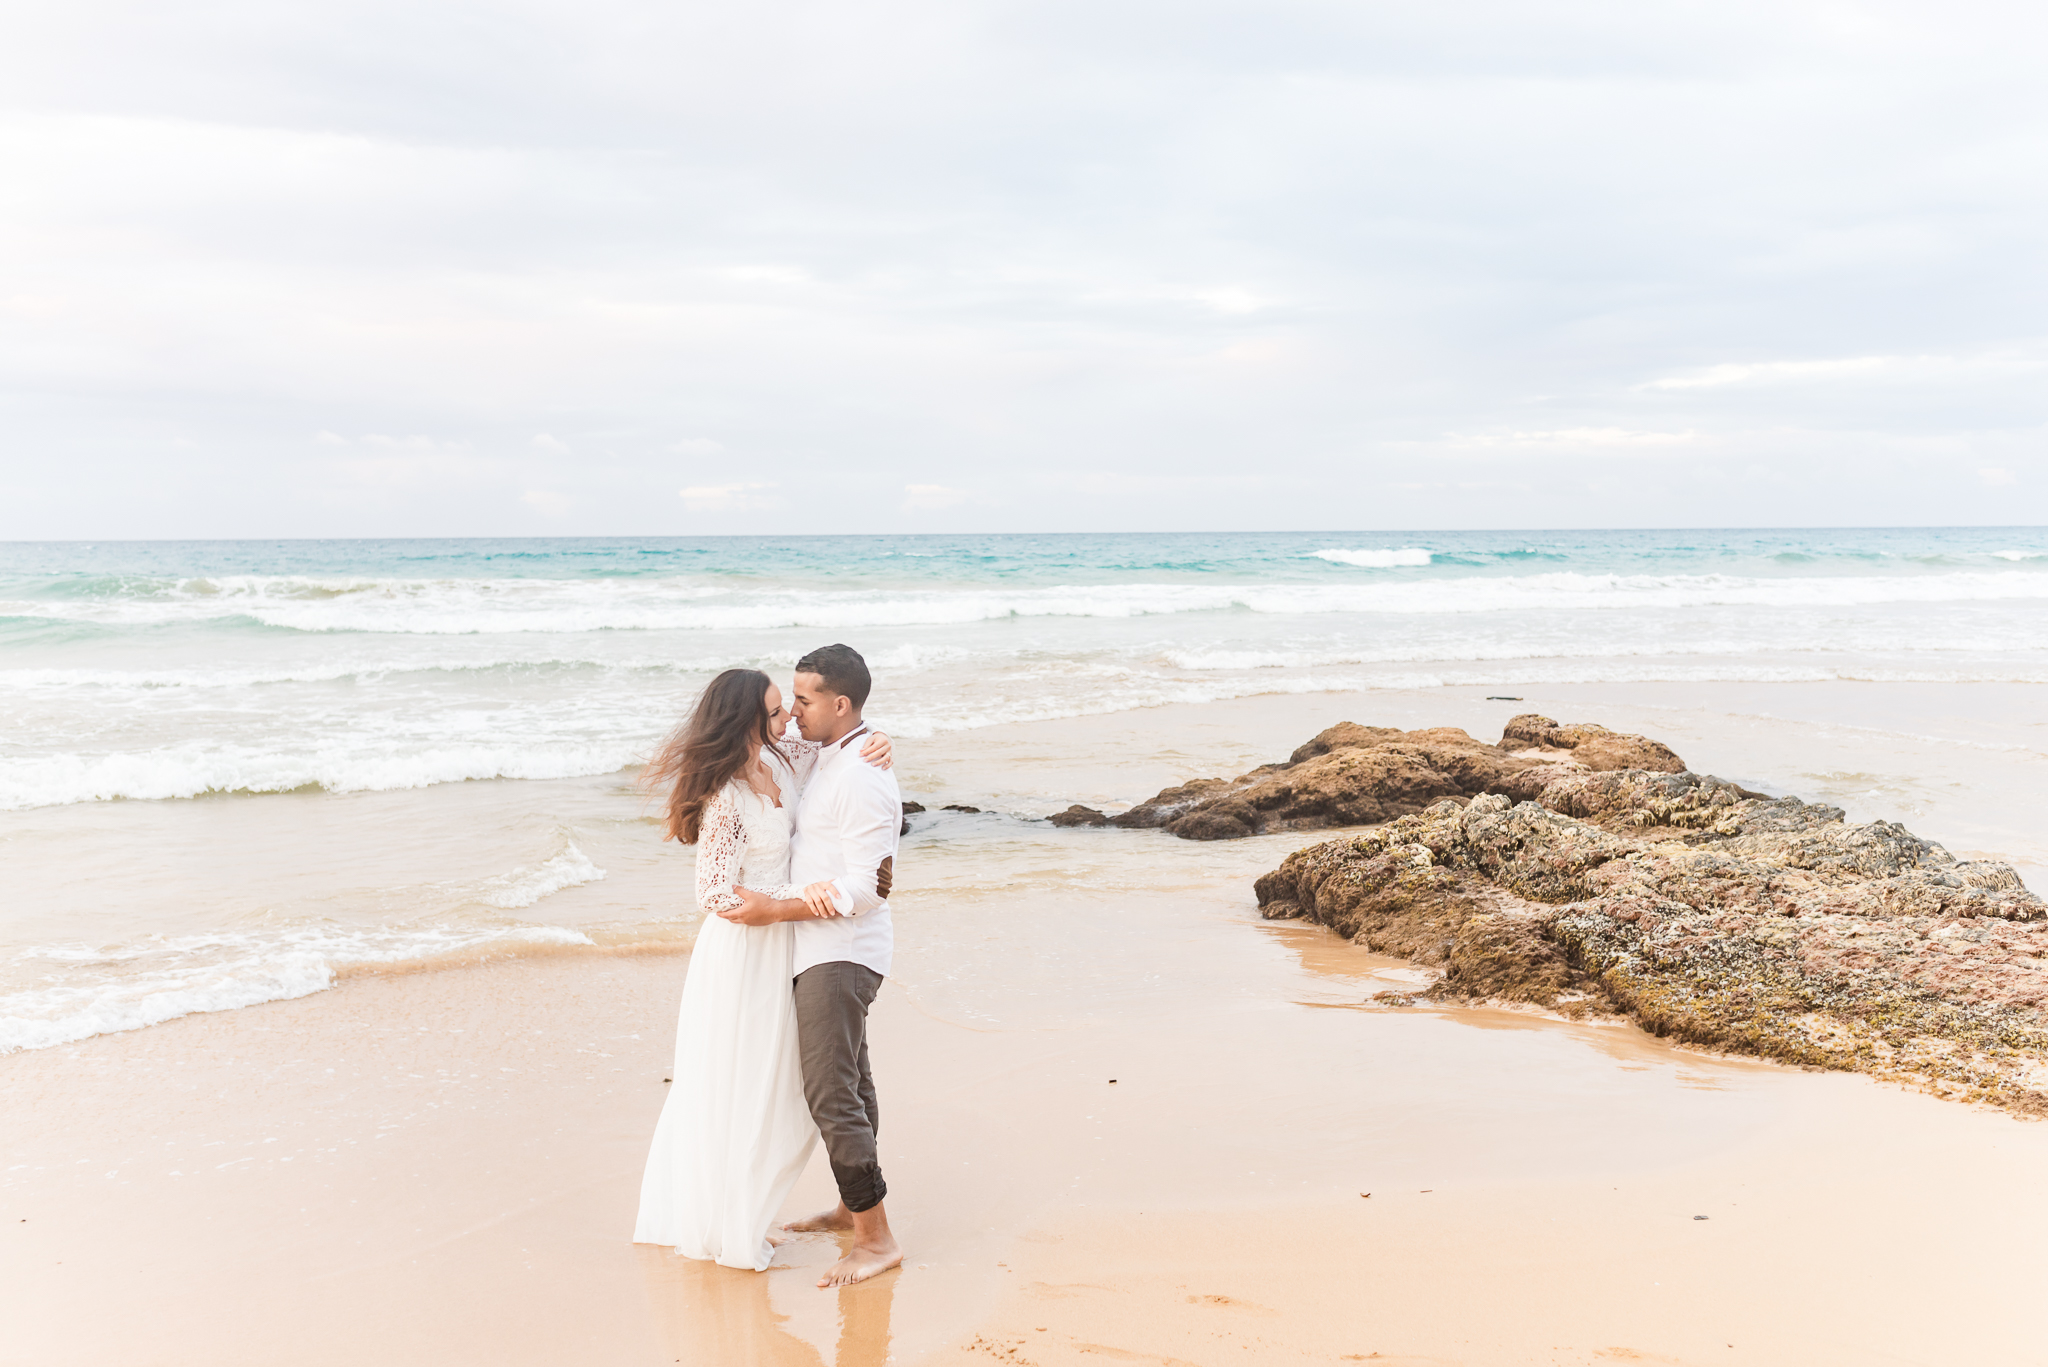 San Juan Destination Wedding Photographers Beach Wedding in Luquillo Puerto Rico-56.jpg